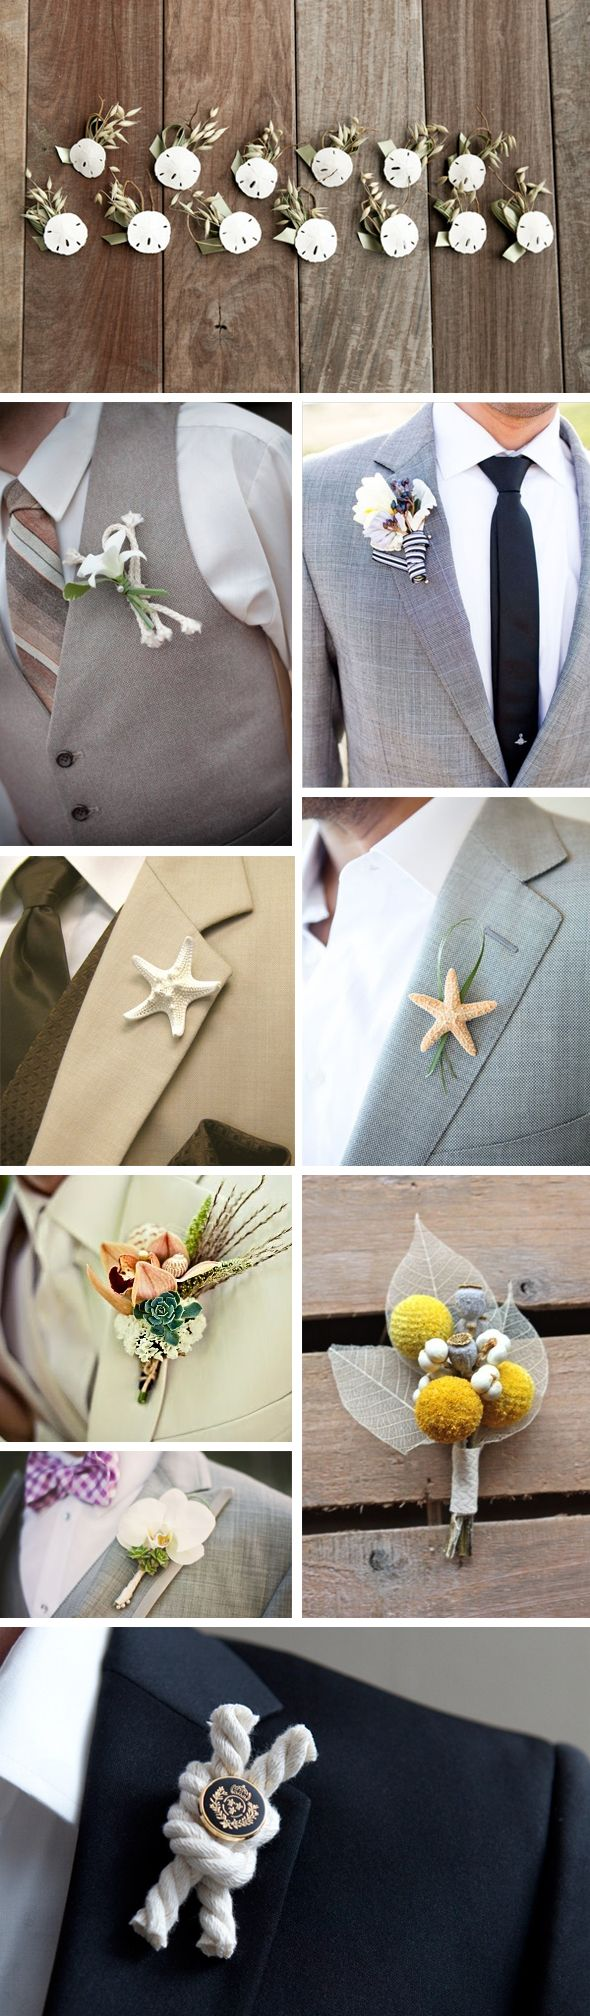 Destination Wedding Boutonniere Ideas | The Destination Wedding Blog - Jet Fete by Bridal Bar